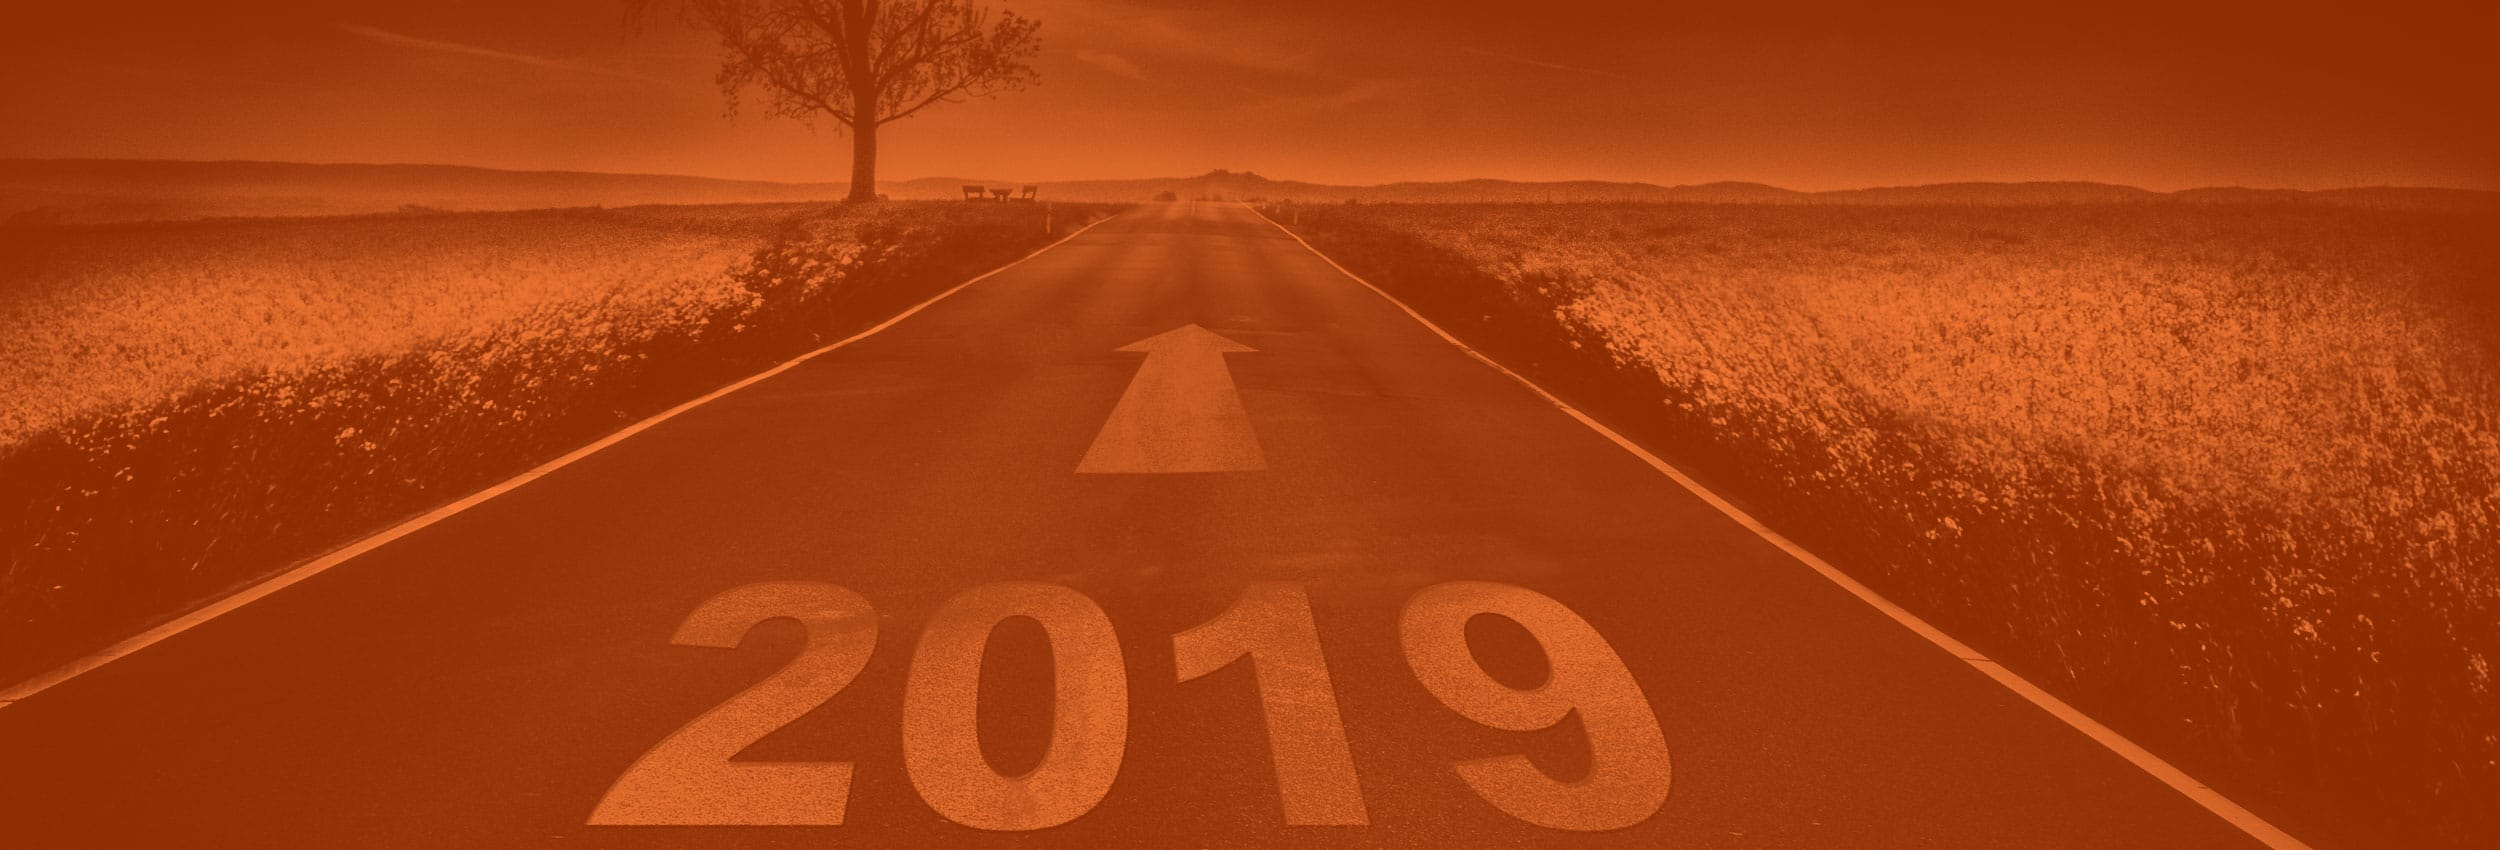 9 B2B Marketing Trends to Watch in 2019 and Beyond